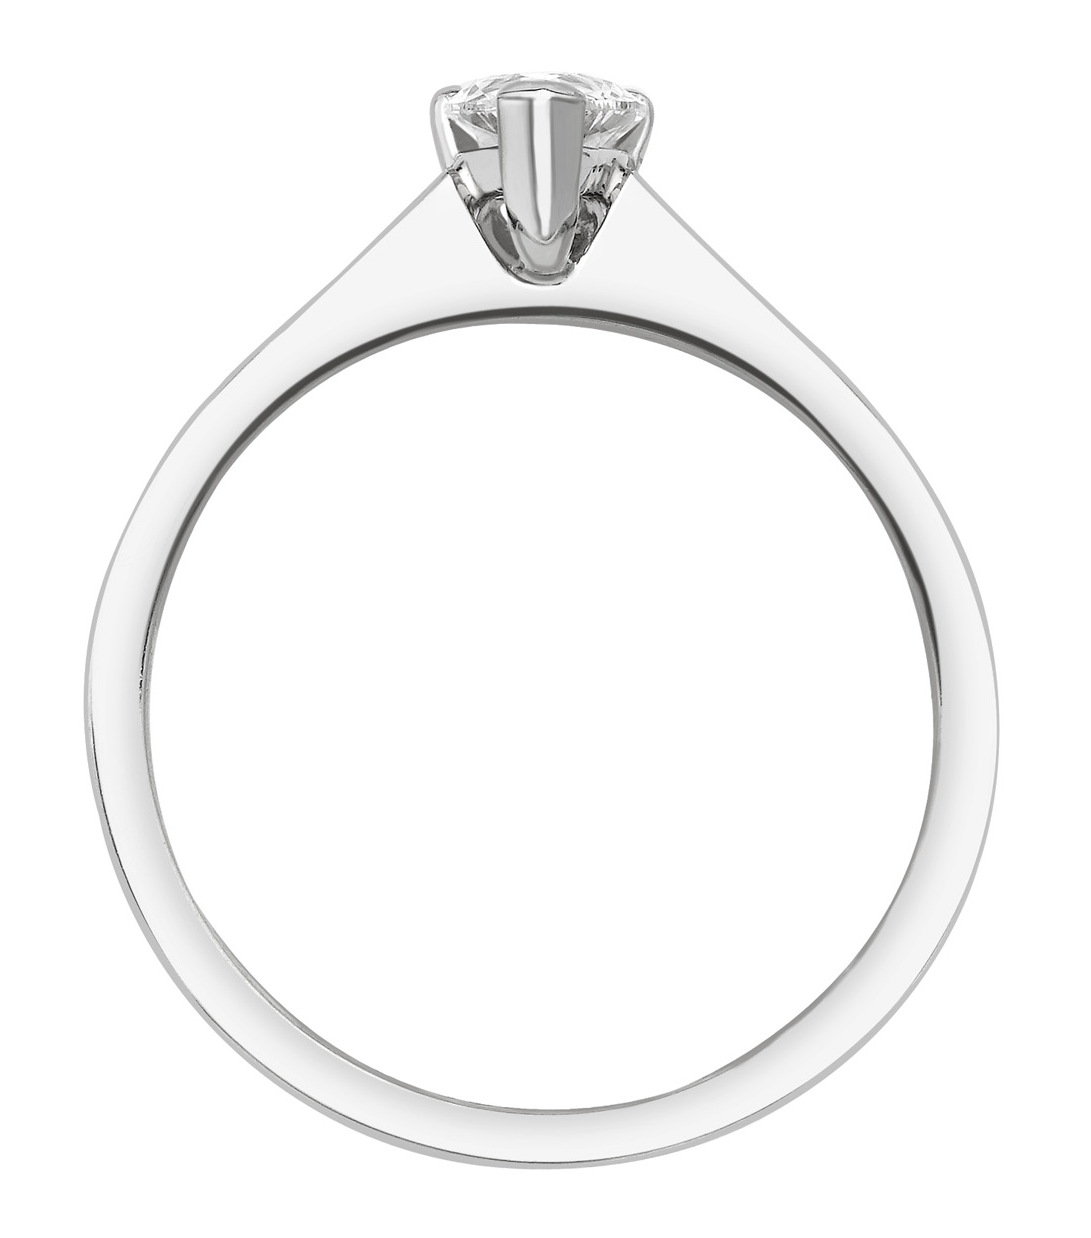 Marquise Cut White Gold Ring with Channel Set Shoulders GRC751 Image 2